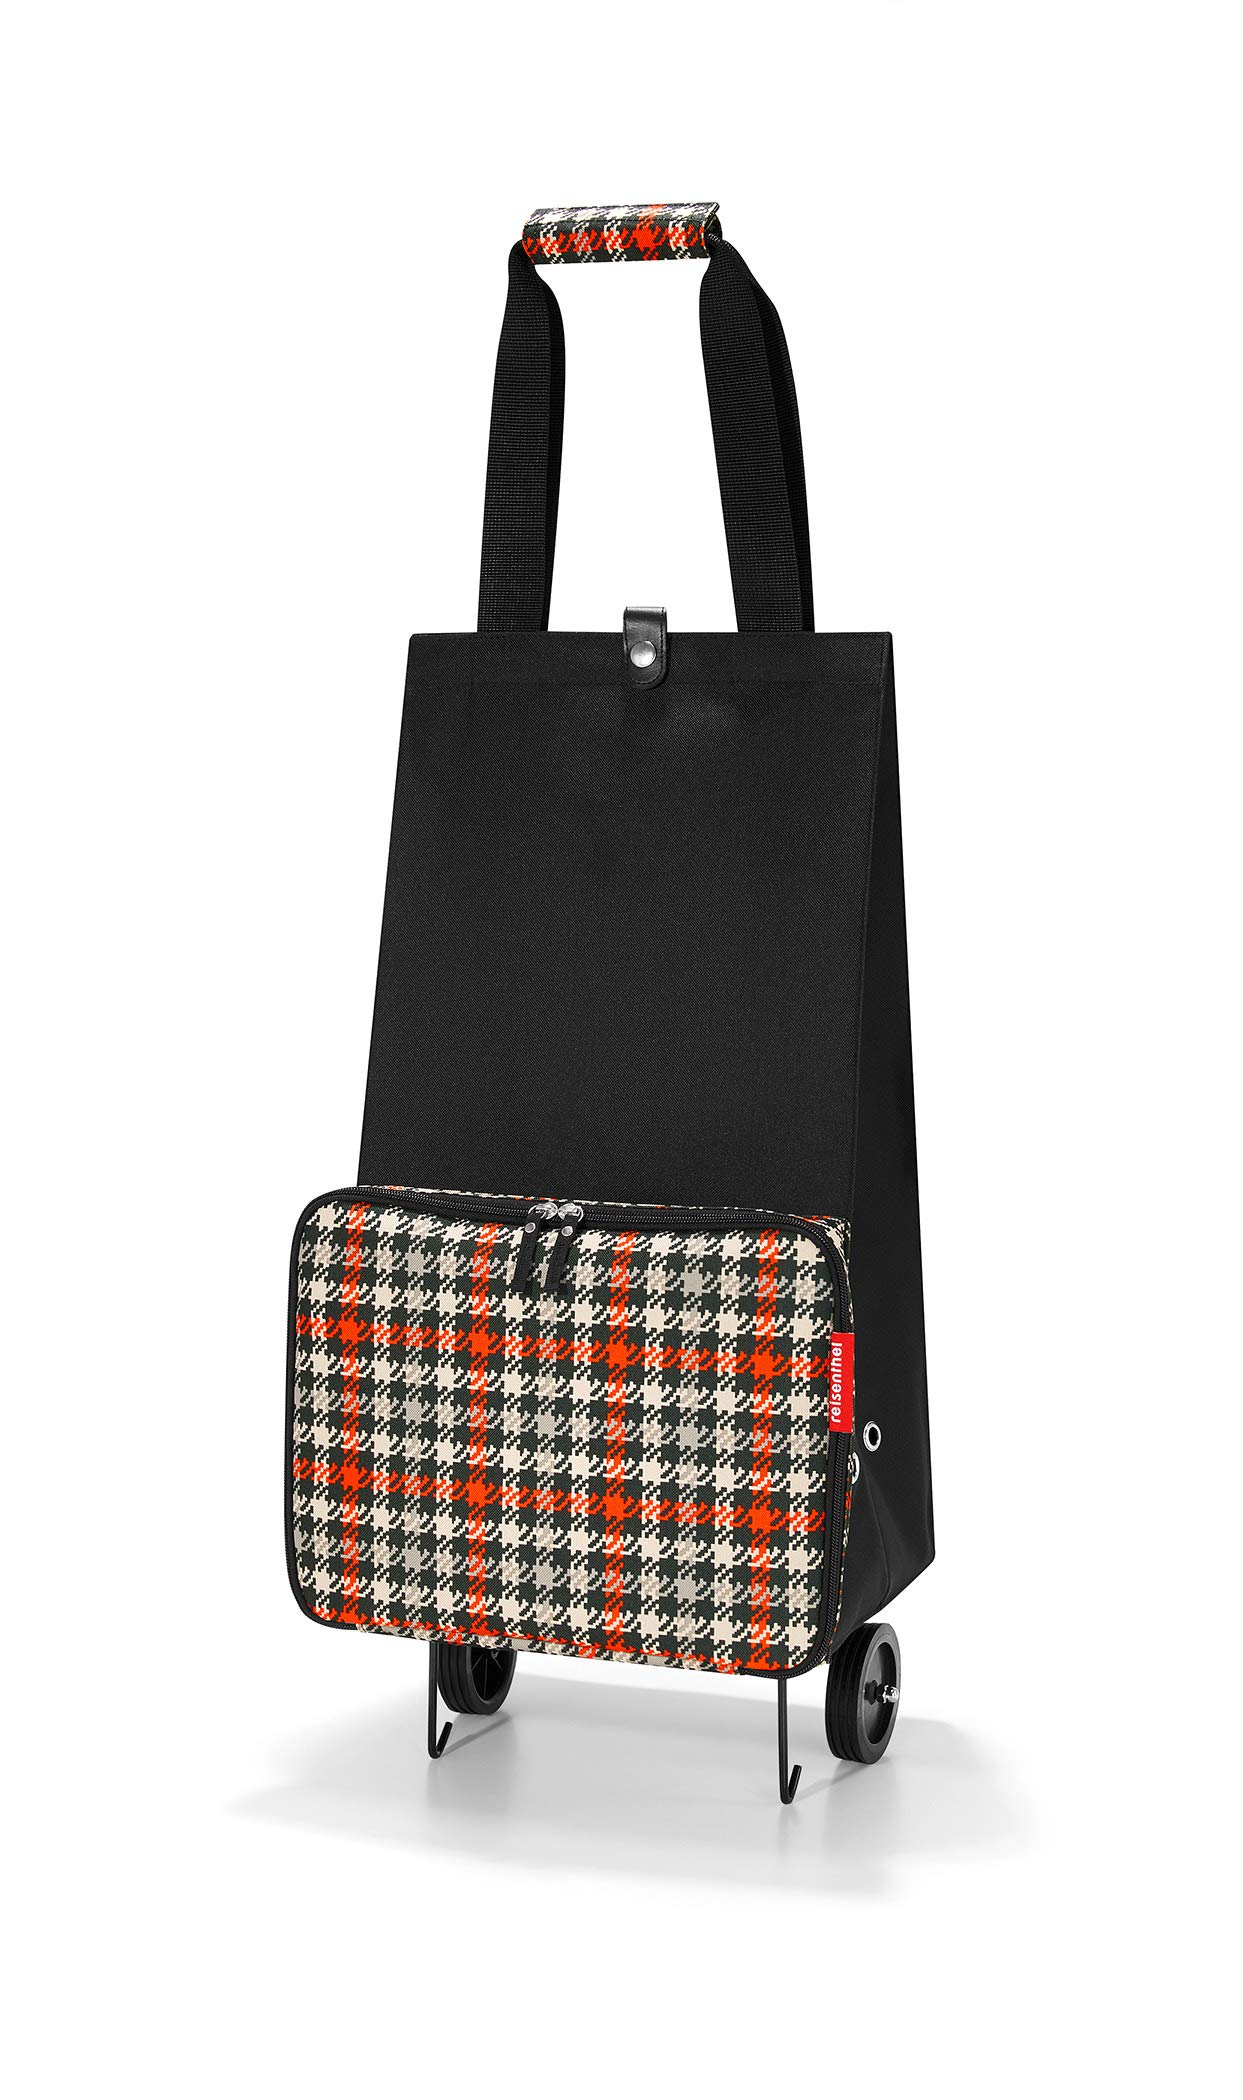 reisenthel Foldable Trolley Bag, Packable Oversized Tote with Wheels, Glencheck Red by reisenthel